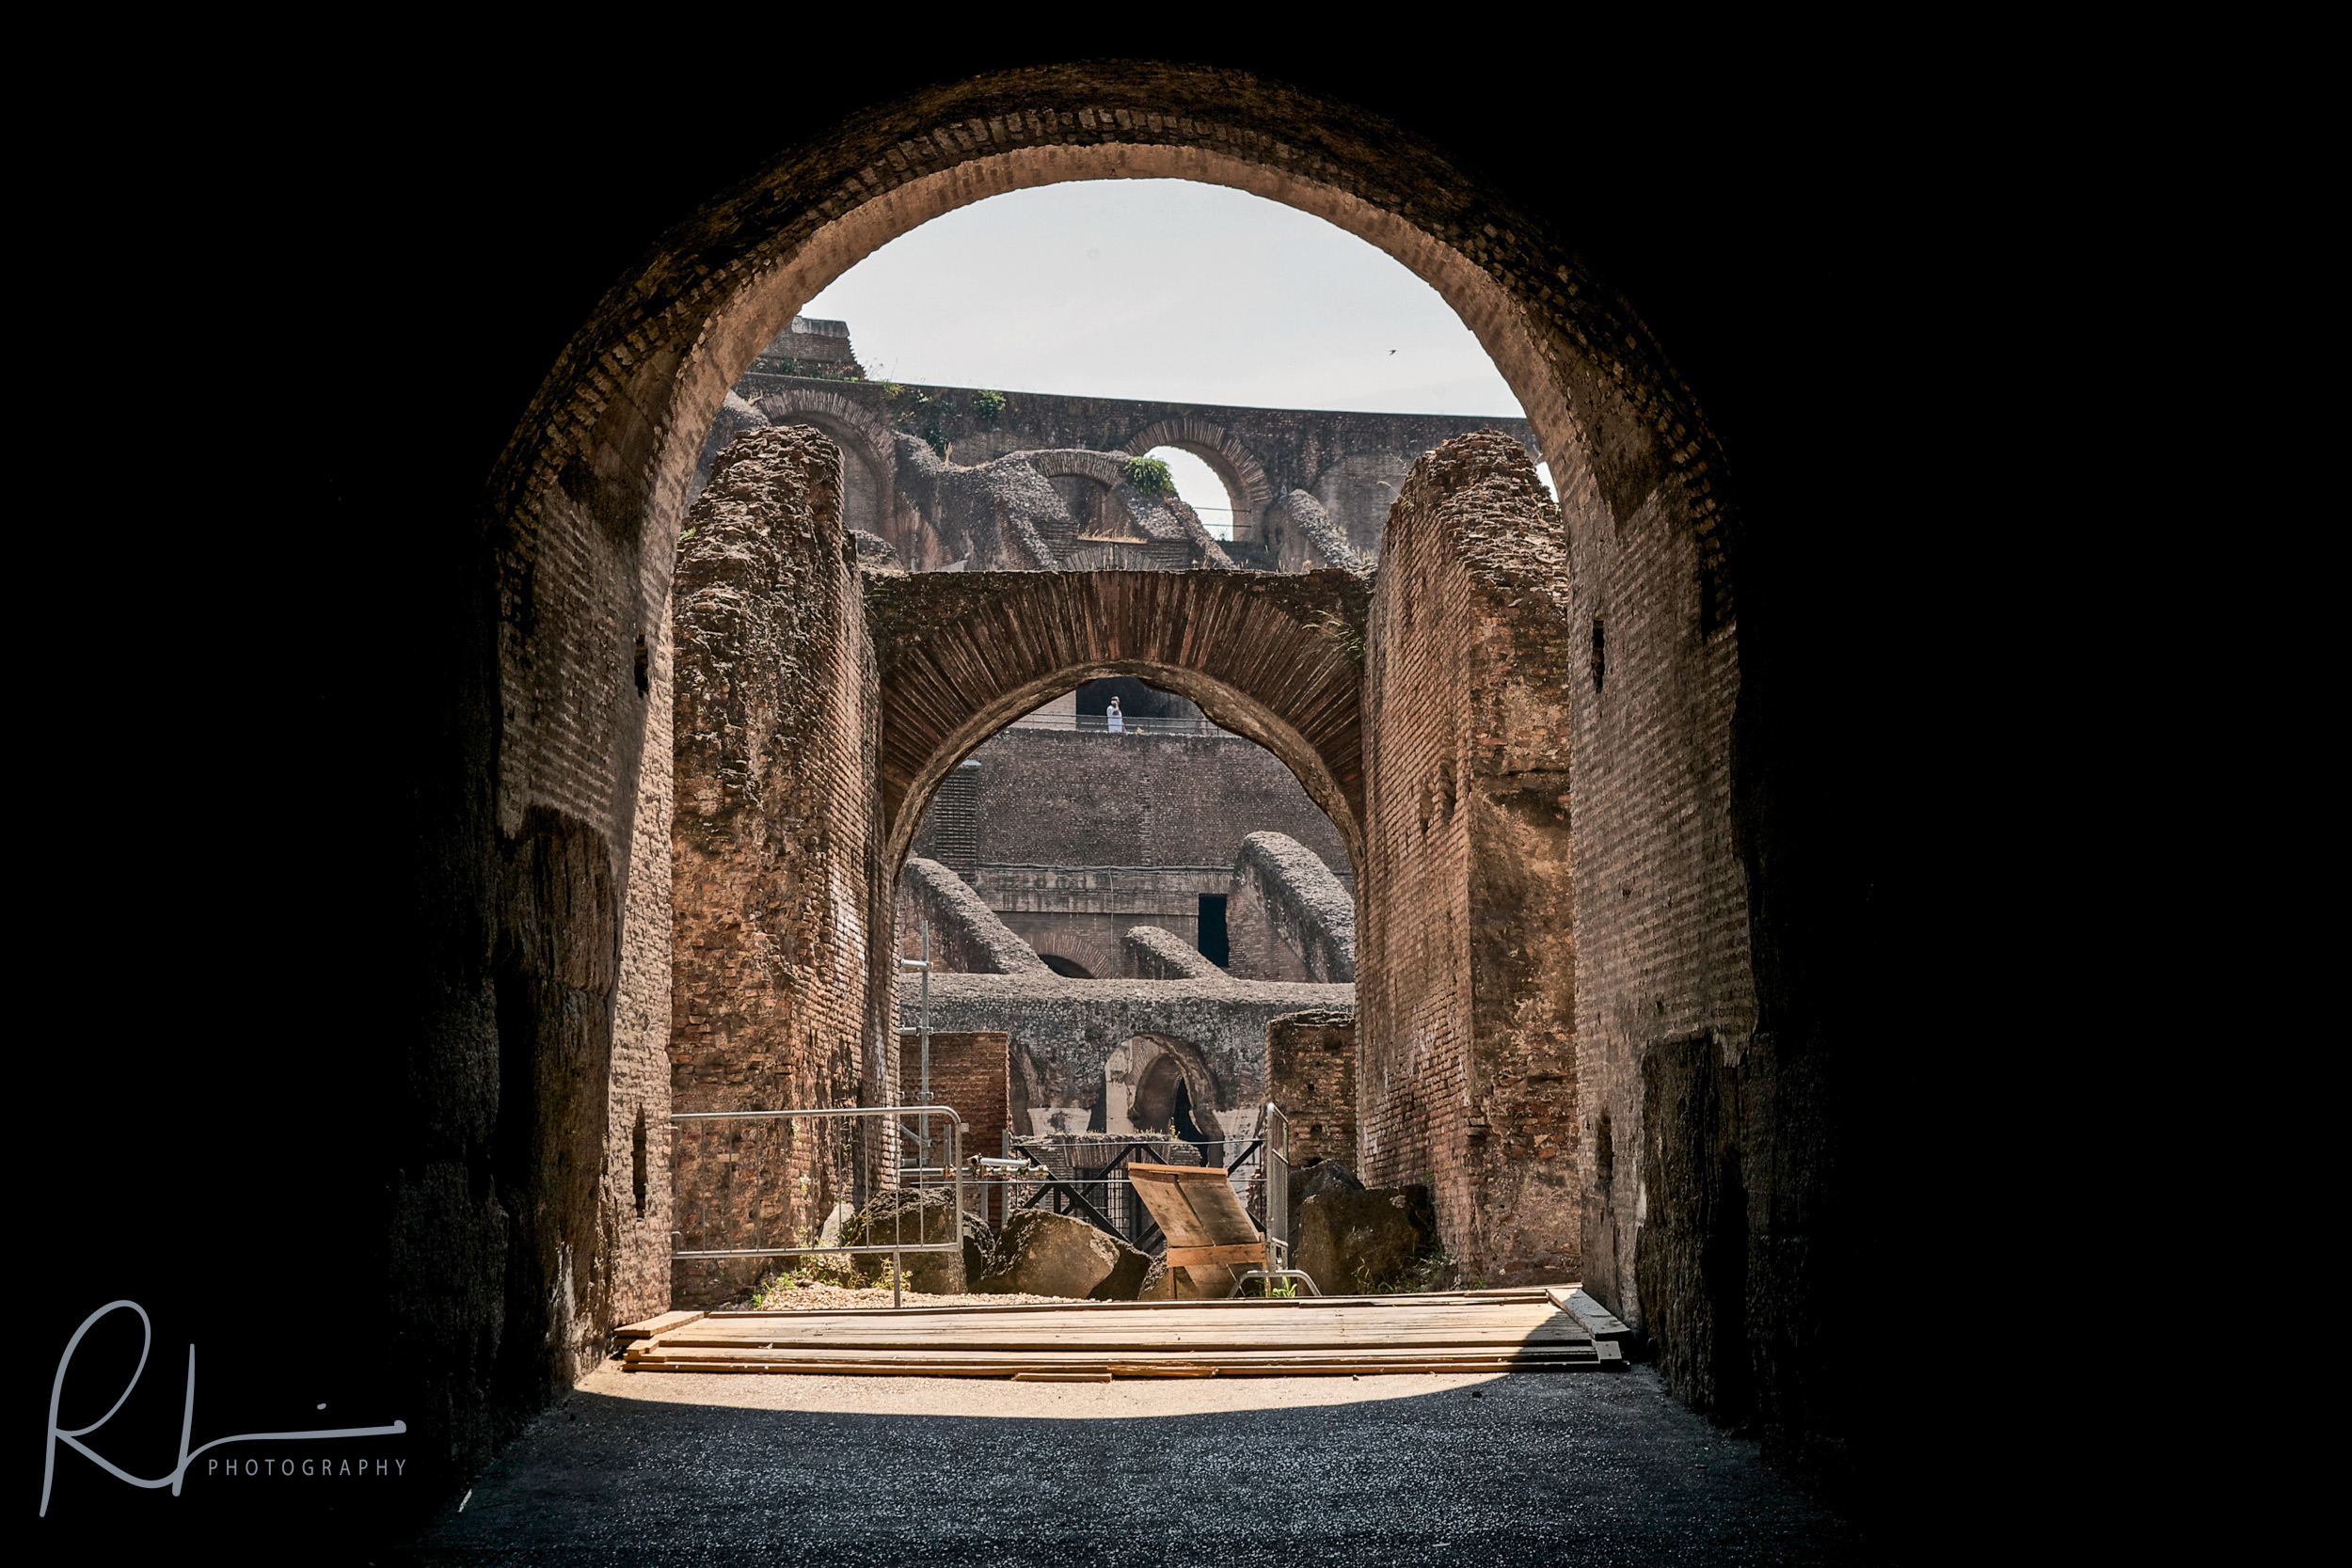 Colosseum entry arch